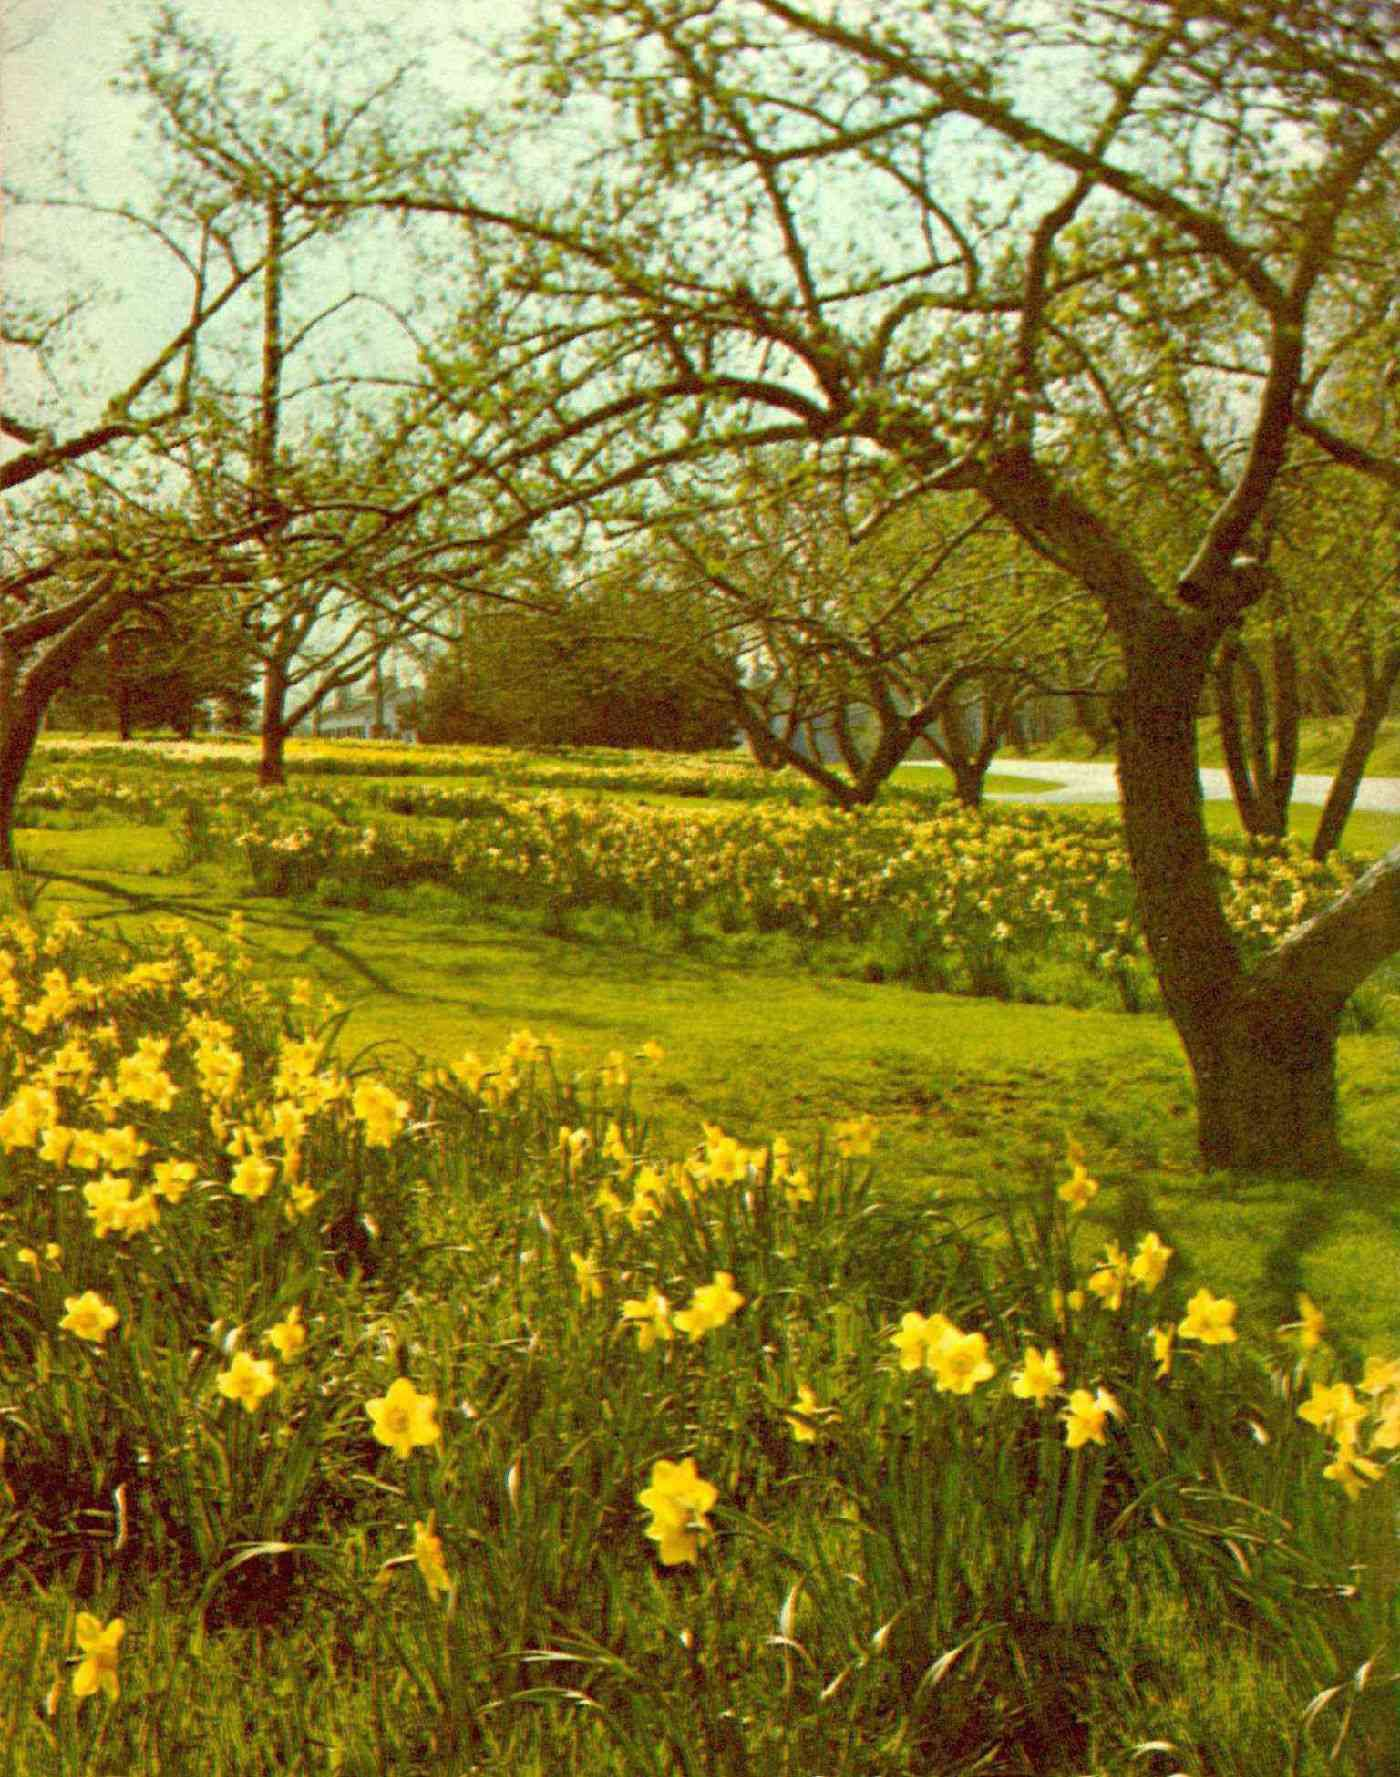 Spring comes to the Reader's Digest headquarters, 1977